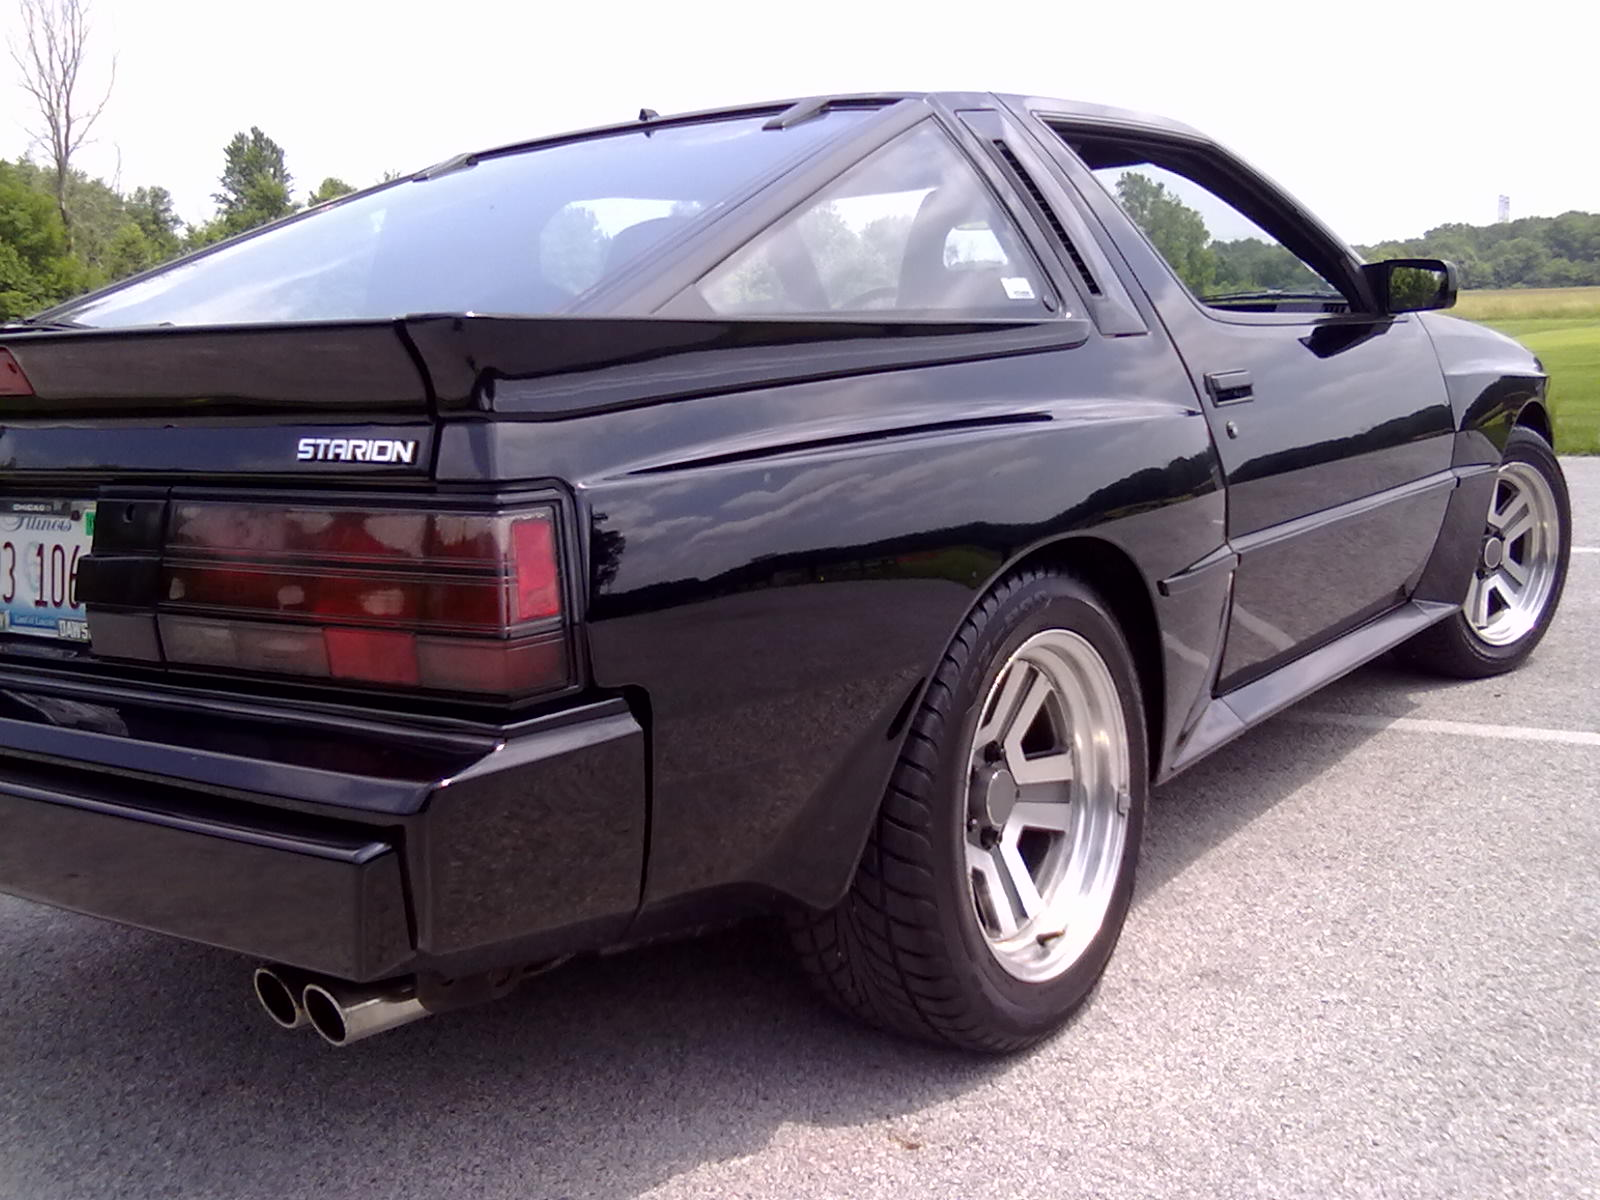 mitsubishi starion seats with Coupe on Sale also Fire 1984 Renault Fuego Turbo furthermore Flares Chairs 1986 Mitsubishi Starion Turbo together with Mandated Jdm Johns 22re 1973 Toyota Celica together with Coupe.